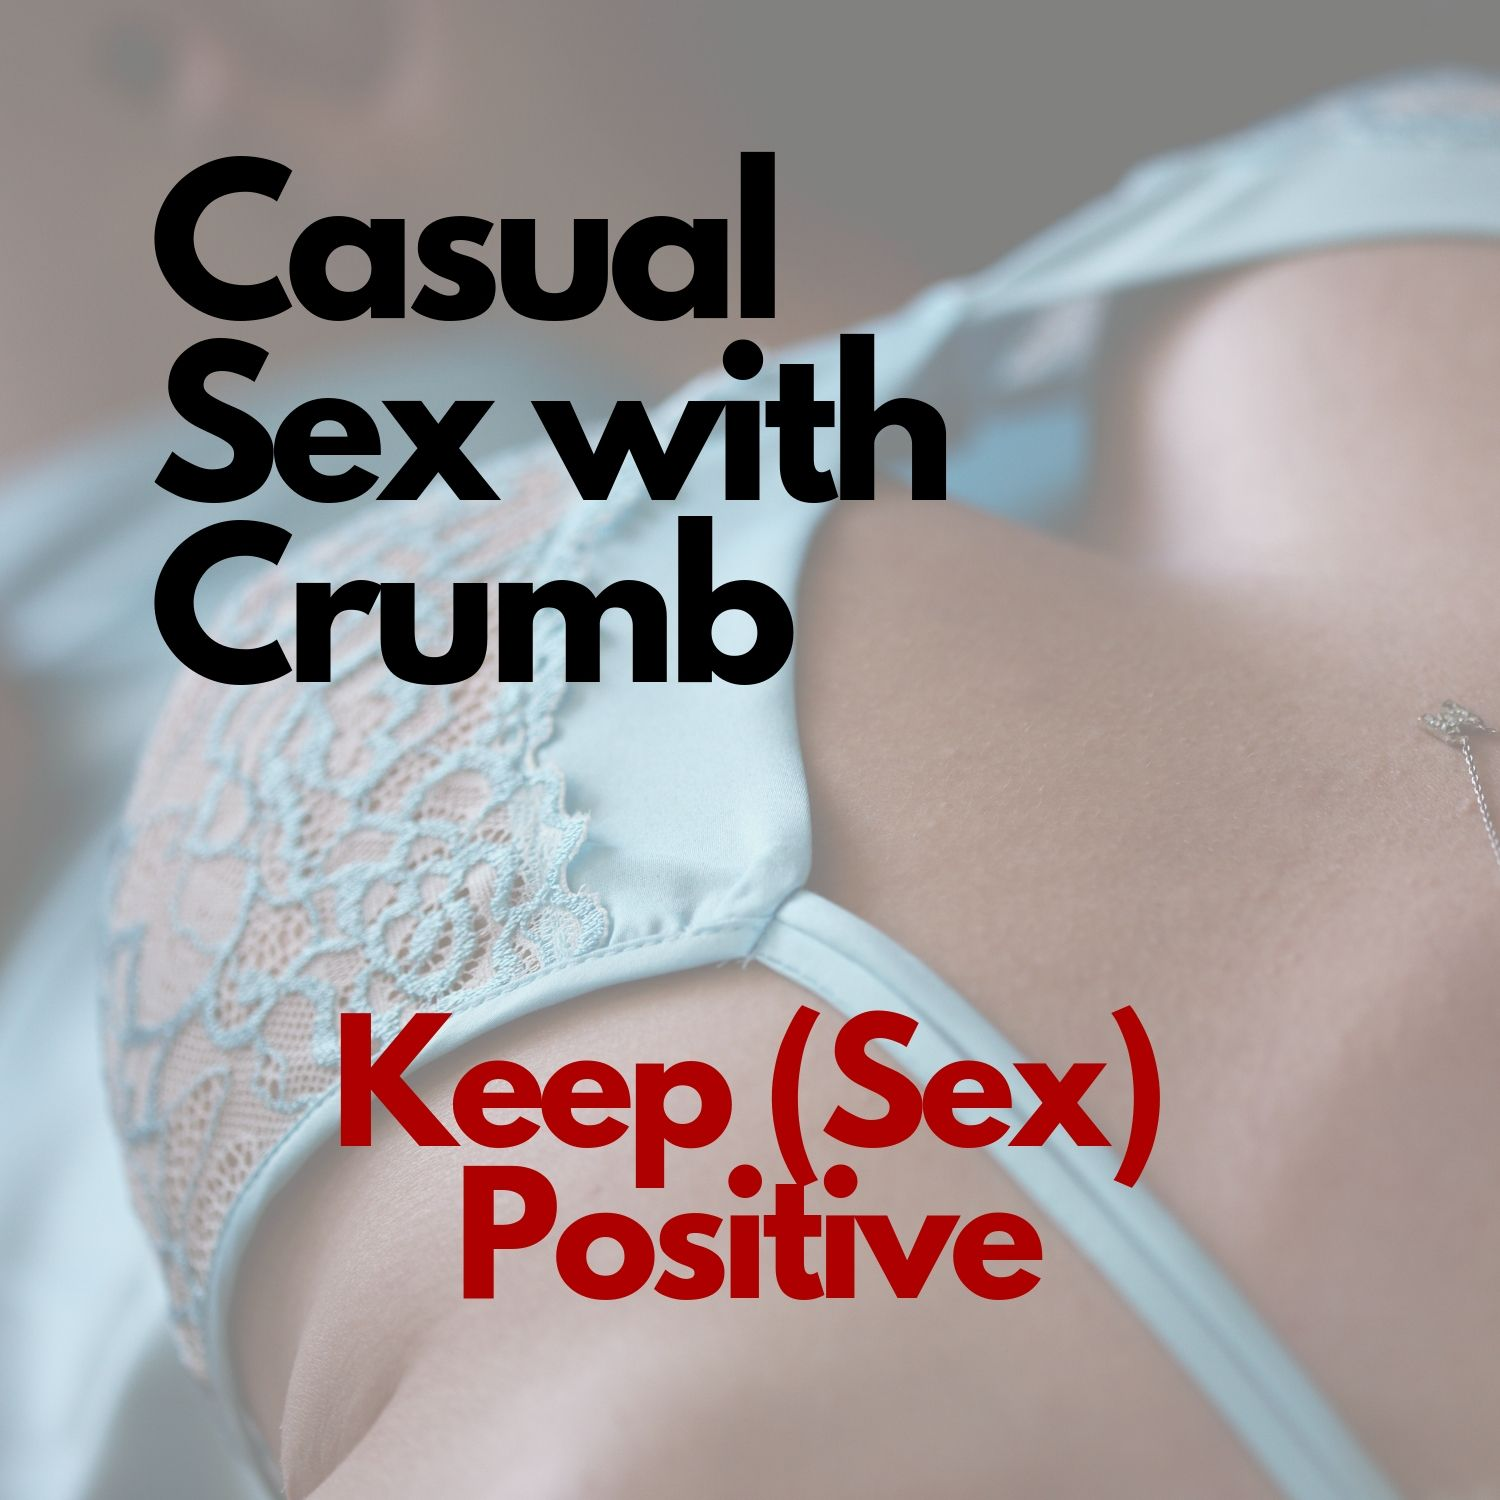 Keep (Sex) Positive